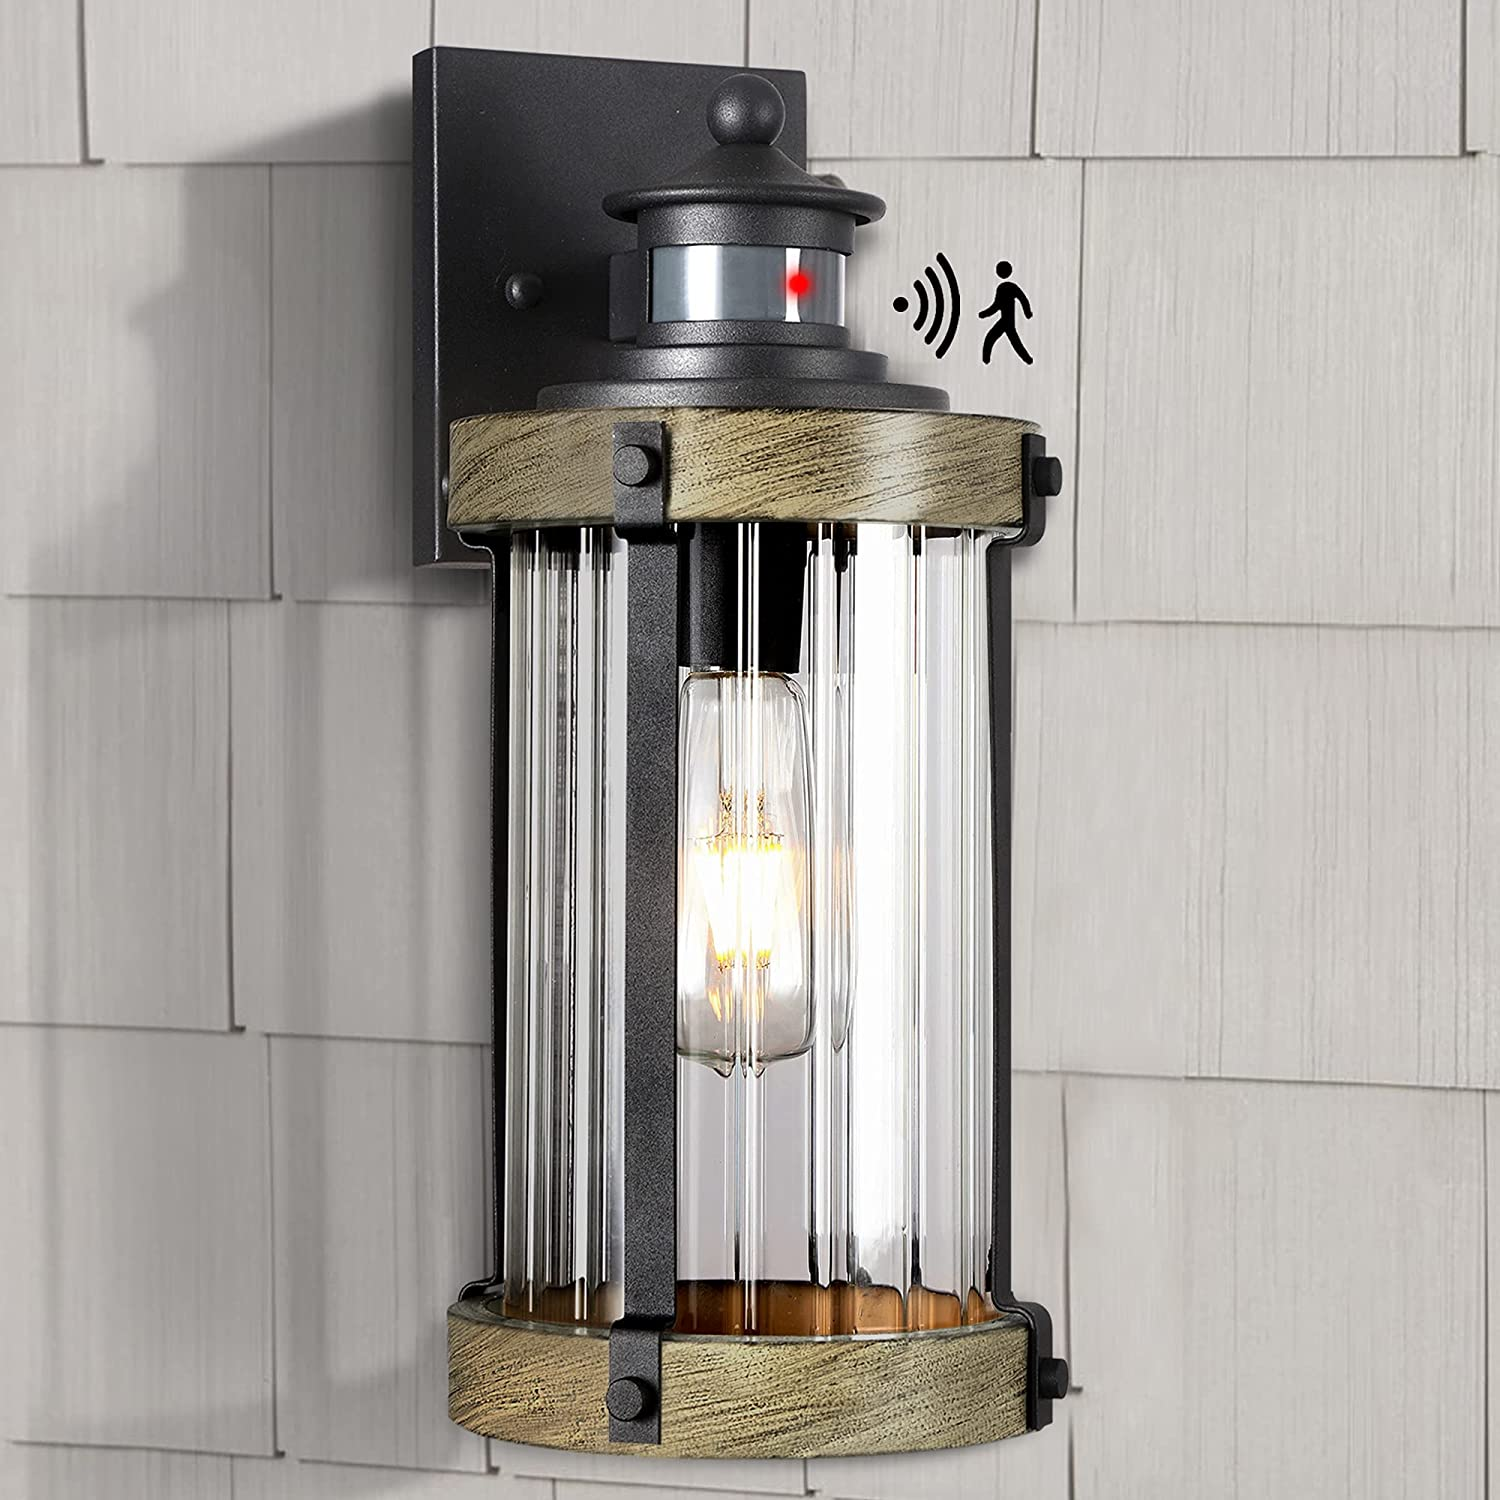 Outdoor Wall Light Fixture with Dusk Dawn to Photocell PIR Motio Sales for Bombing new work sale